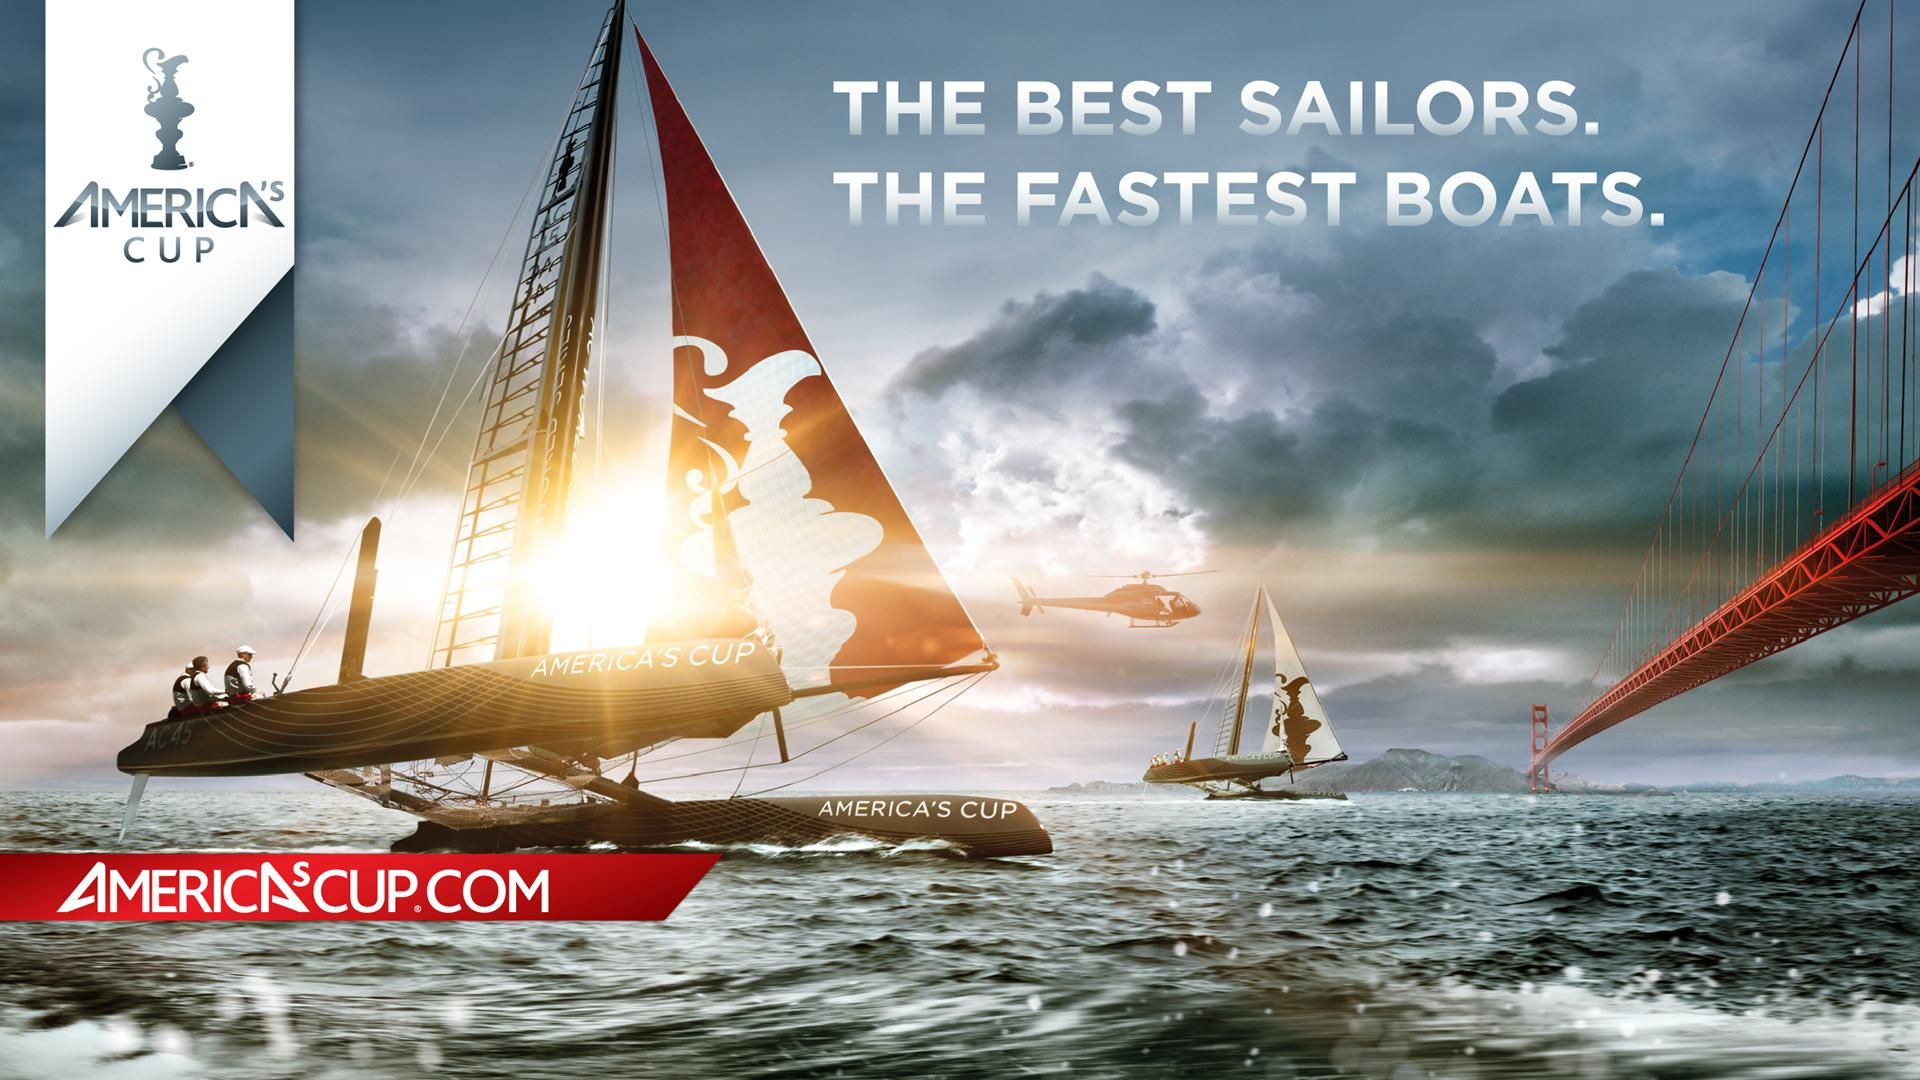 Wallpaper Yacht Extreme Sailing Americas Cup The Best